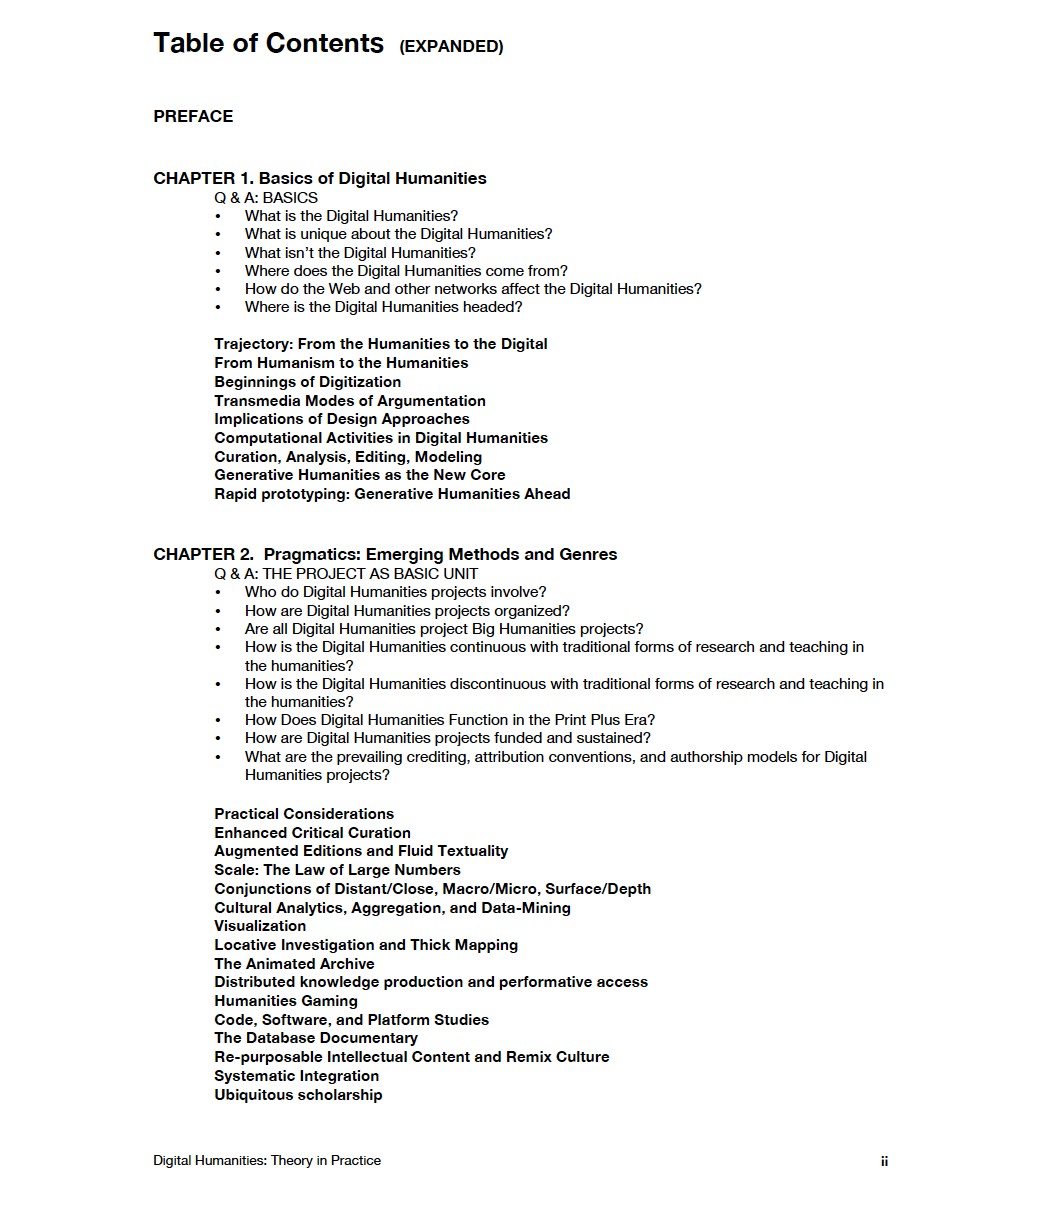 computer engineering graduate resume sample essays analysis of an resume power verbs examples power verbs for resume key action scholarship resume templates ipnodns ru